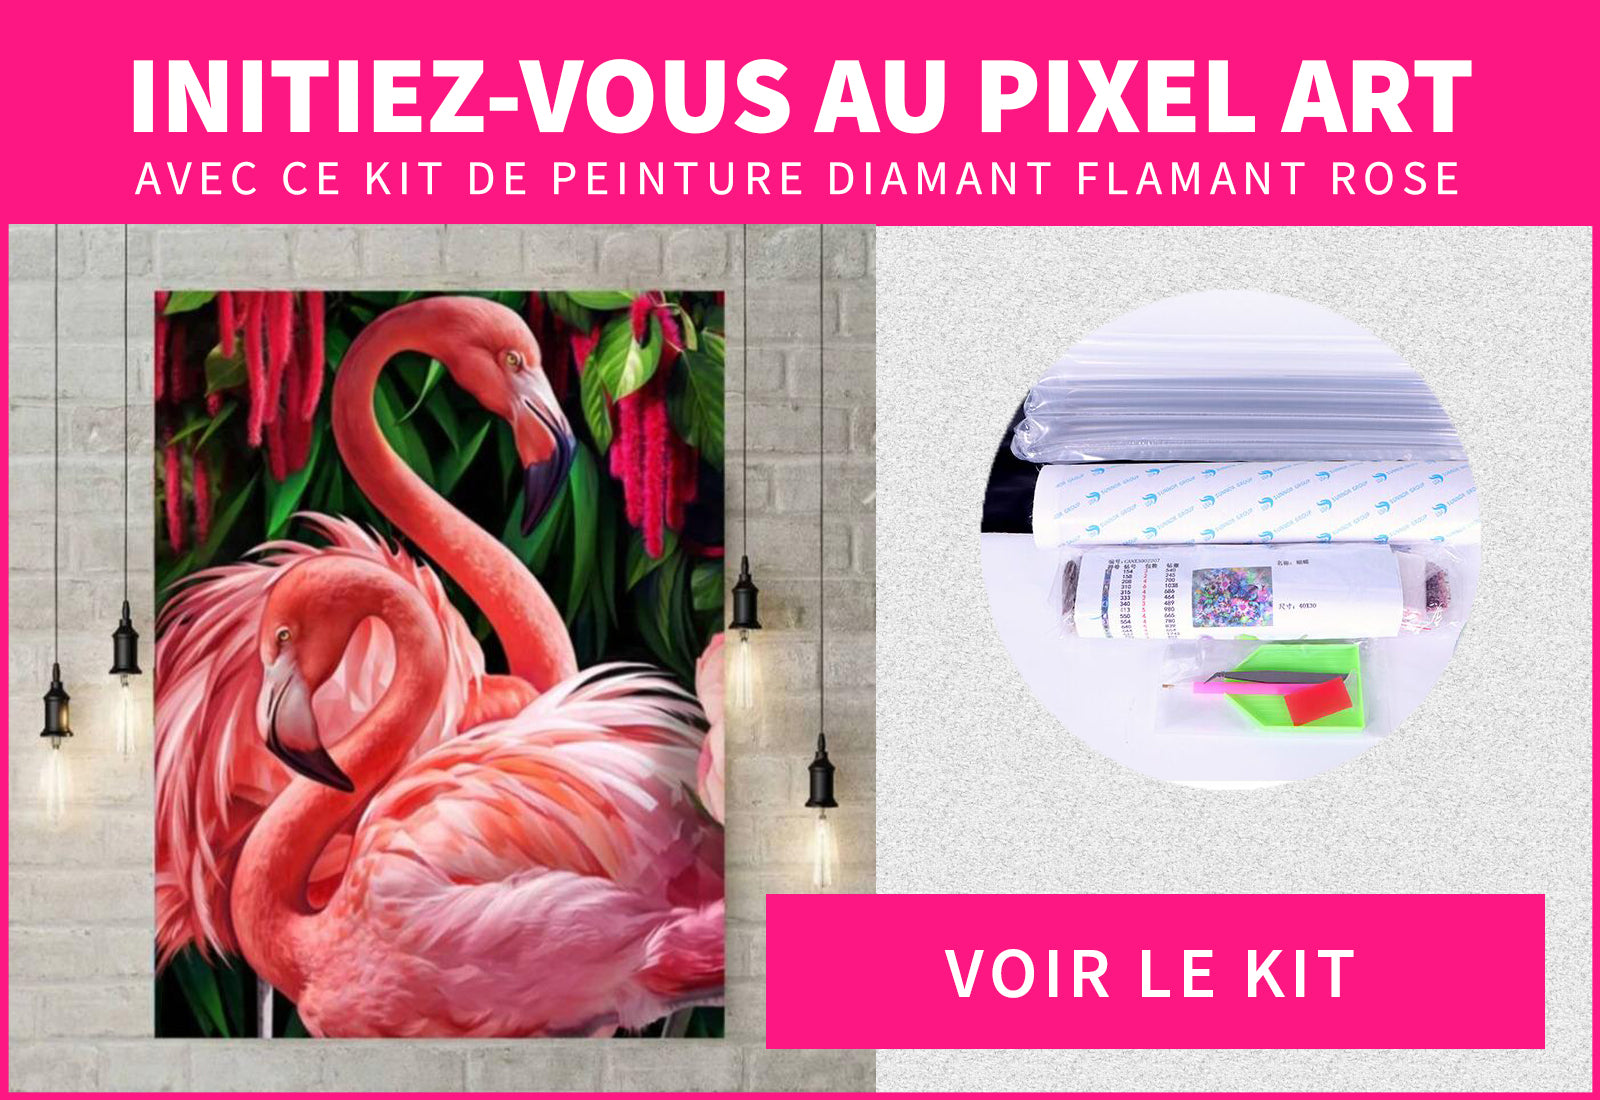 Flamant Rose en Pixel Art : Kit de Peinture Diamant